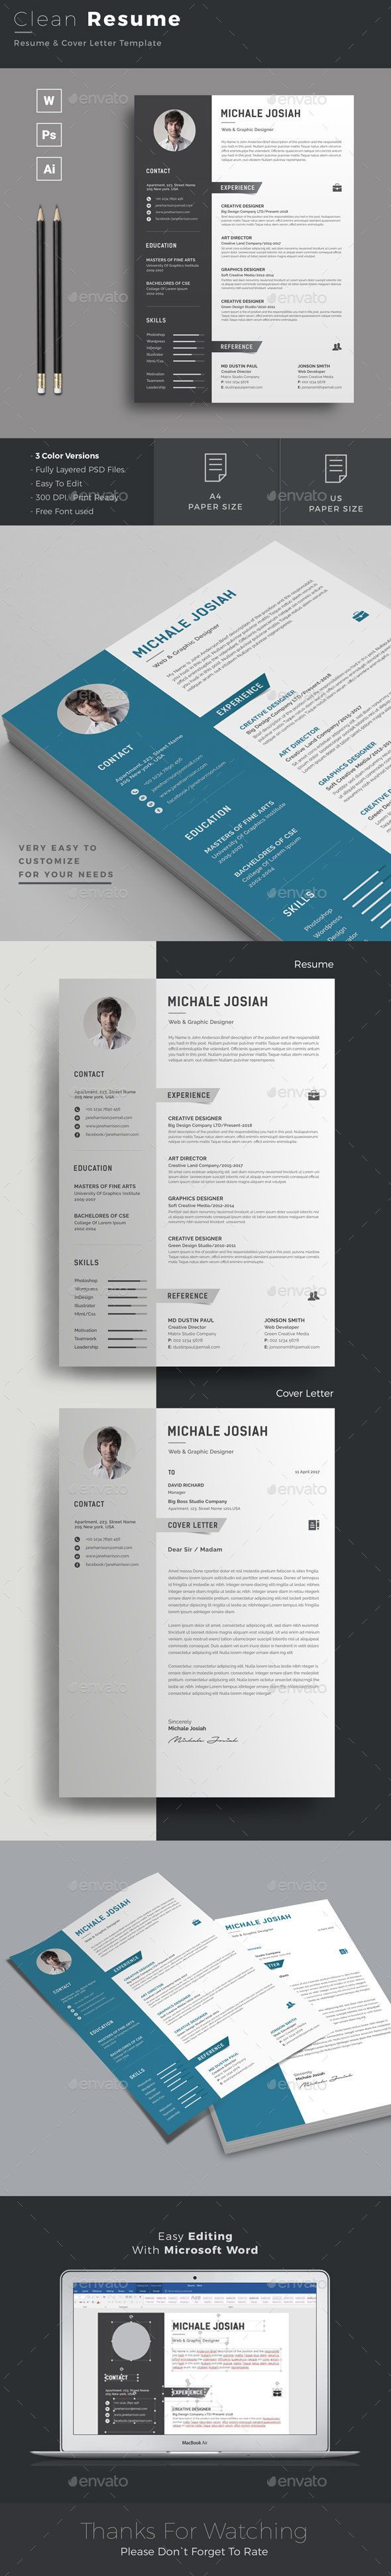 Resume Best 100 Grafisk images on Pinterest